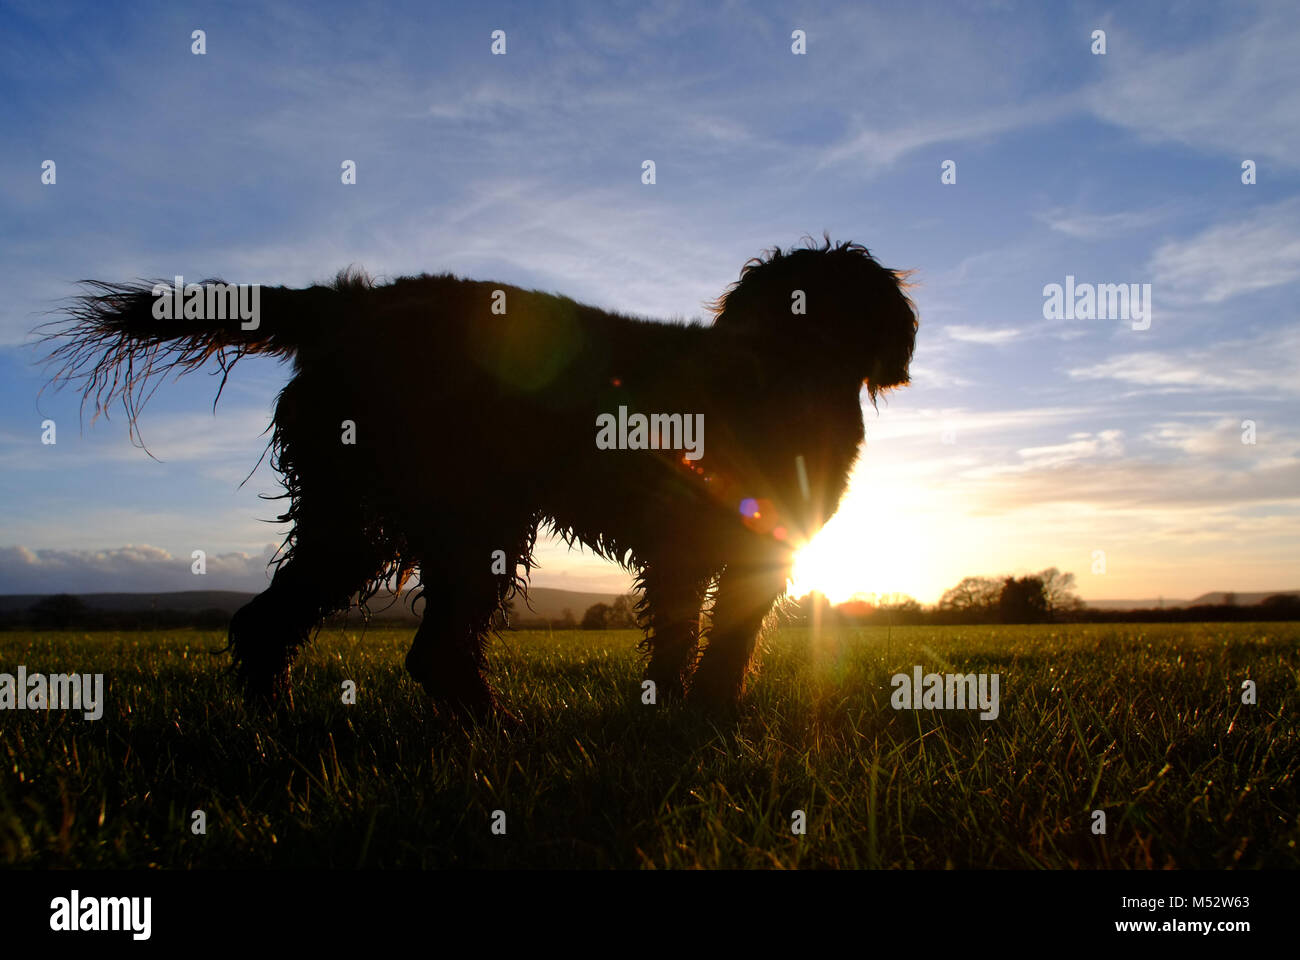 Small scruffy dog looking at the setting sun - Stock Image